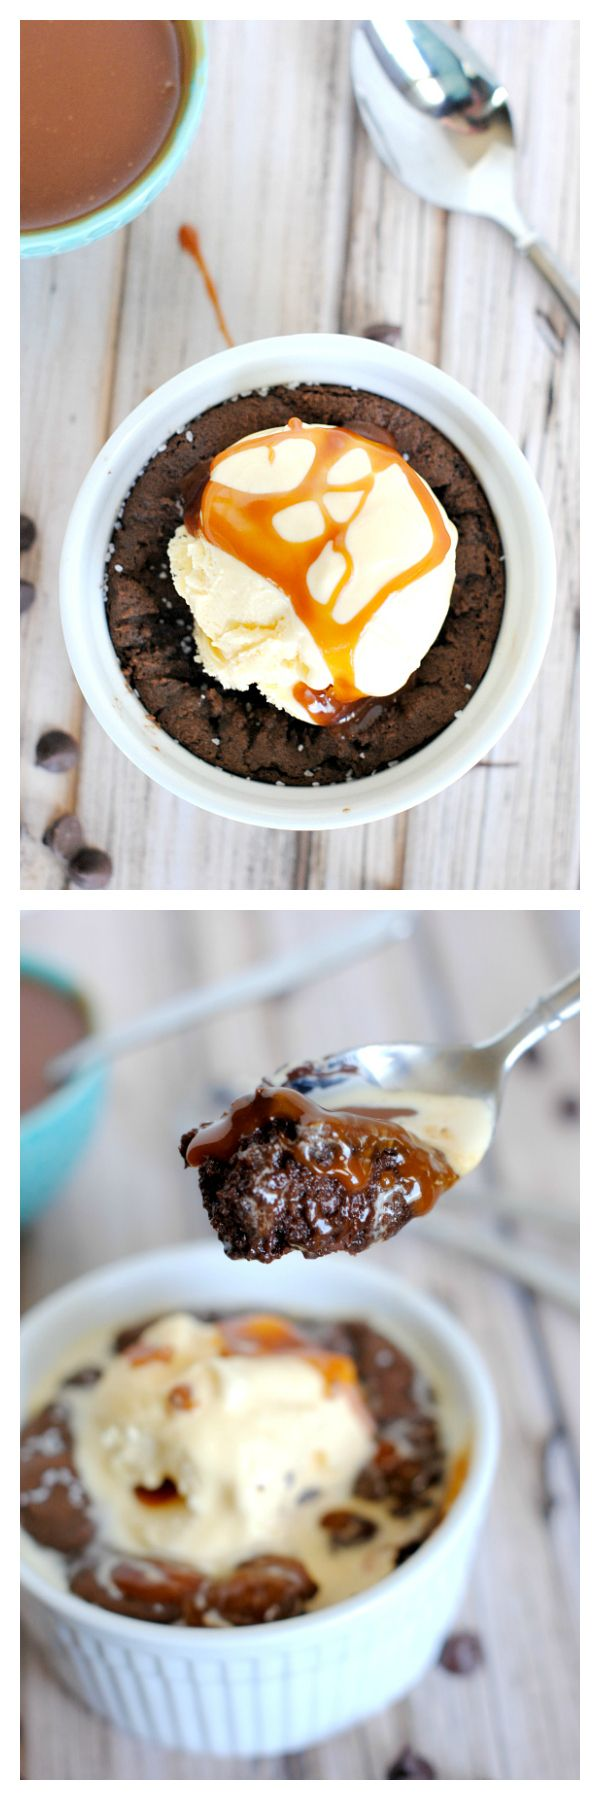 Chocolate Salted Caramel Pizookie-Gooey, Decadent and Amazing!